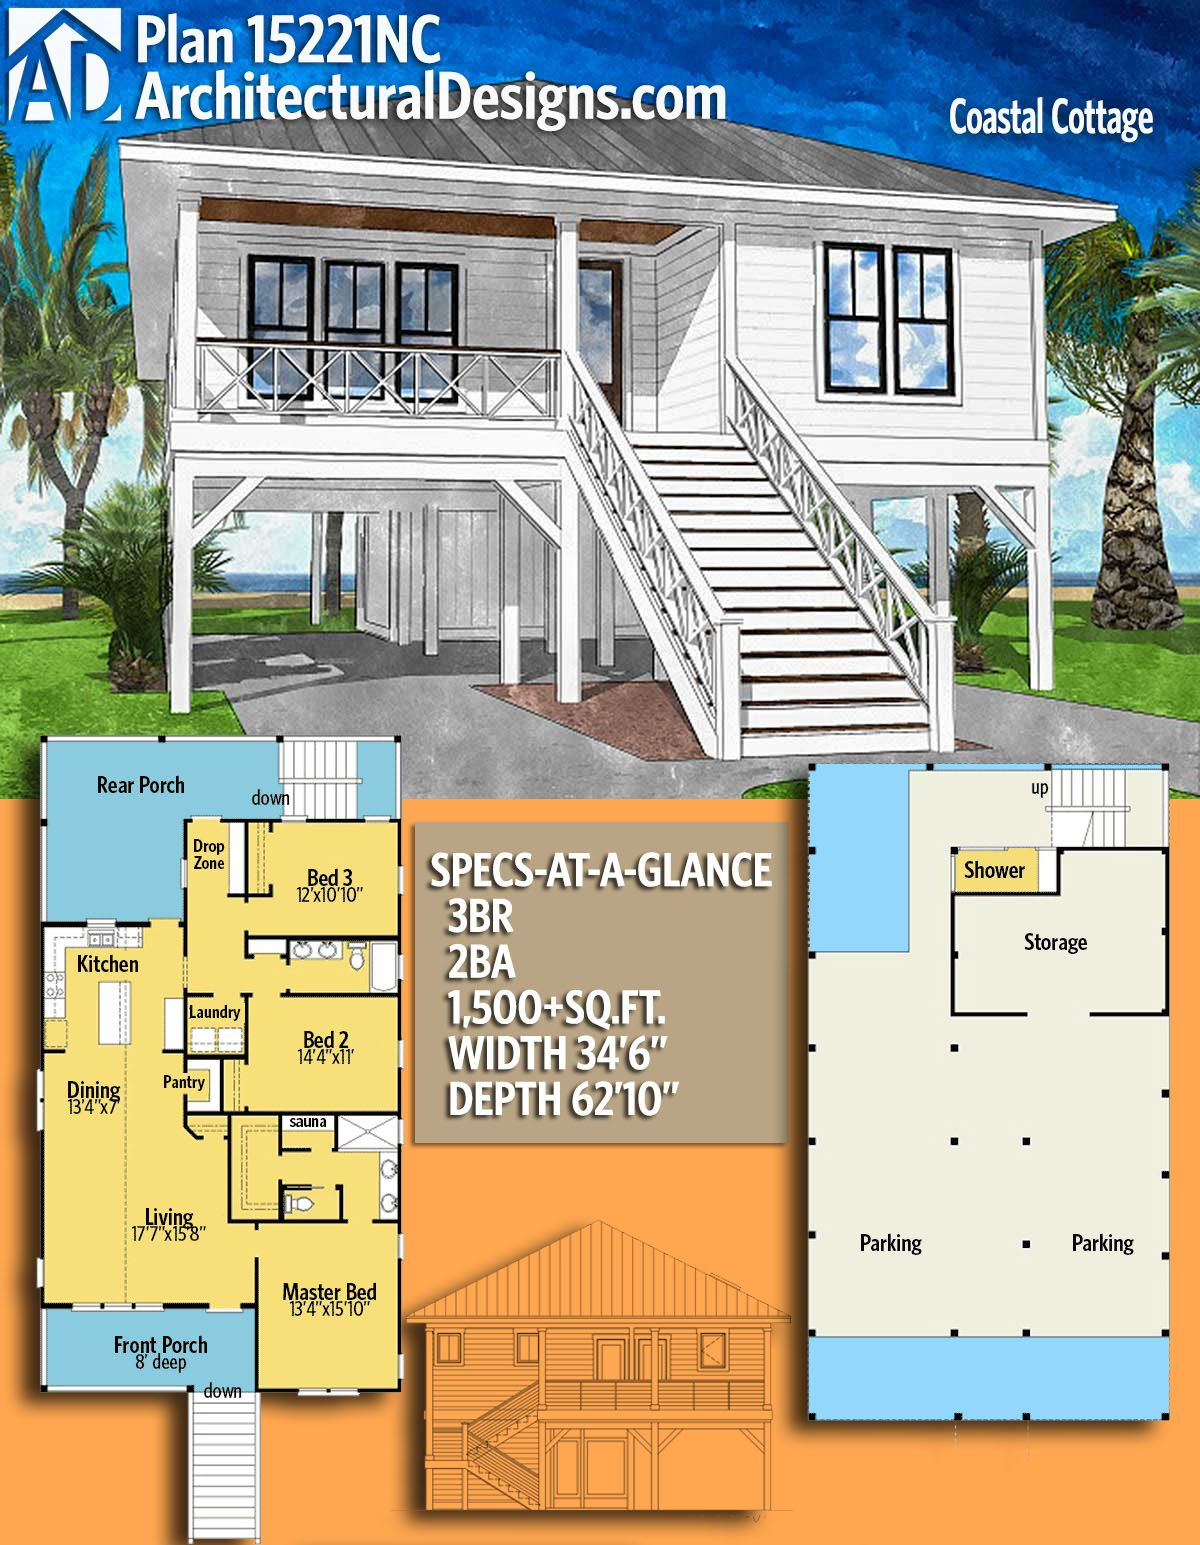 Plan 15221nc Coastal Cottage With Outdoor Shower Beach Cottage House Plans Coastal House Plans Small Beach Houses